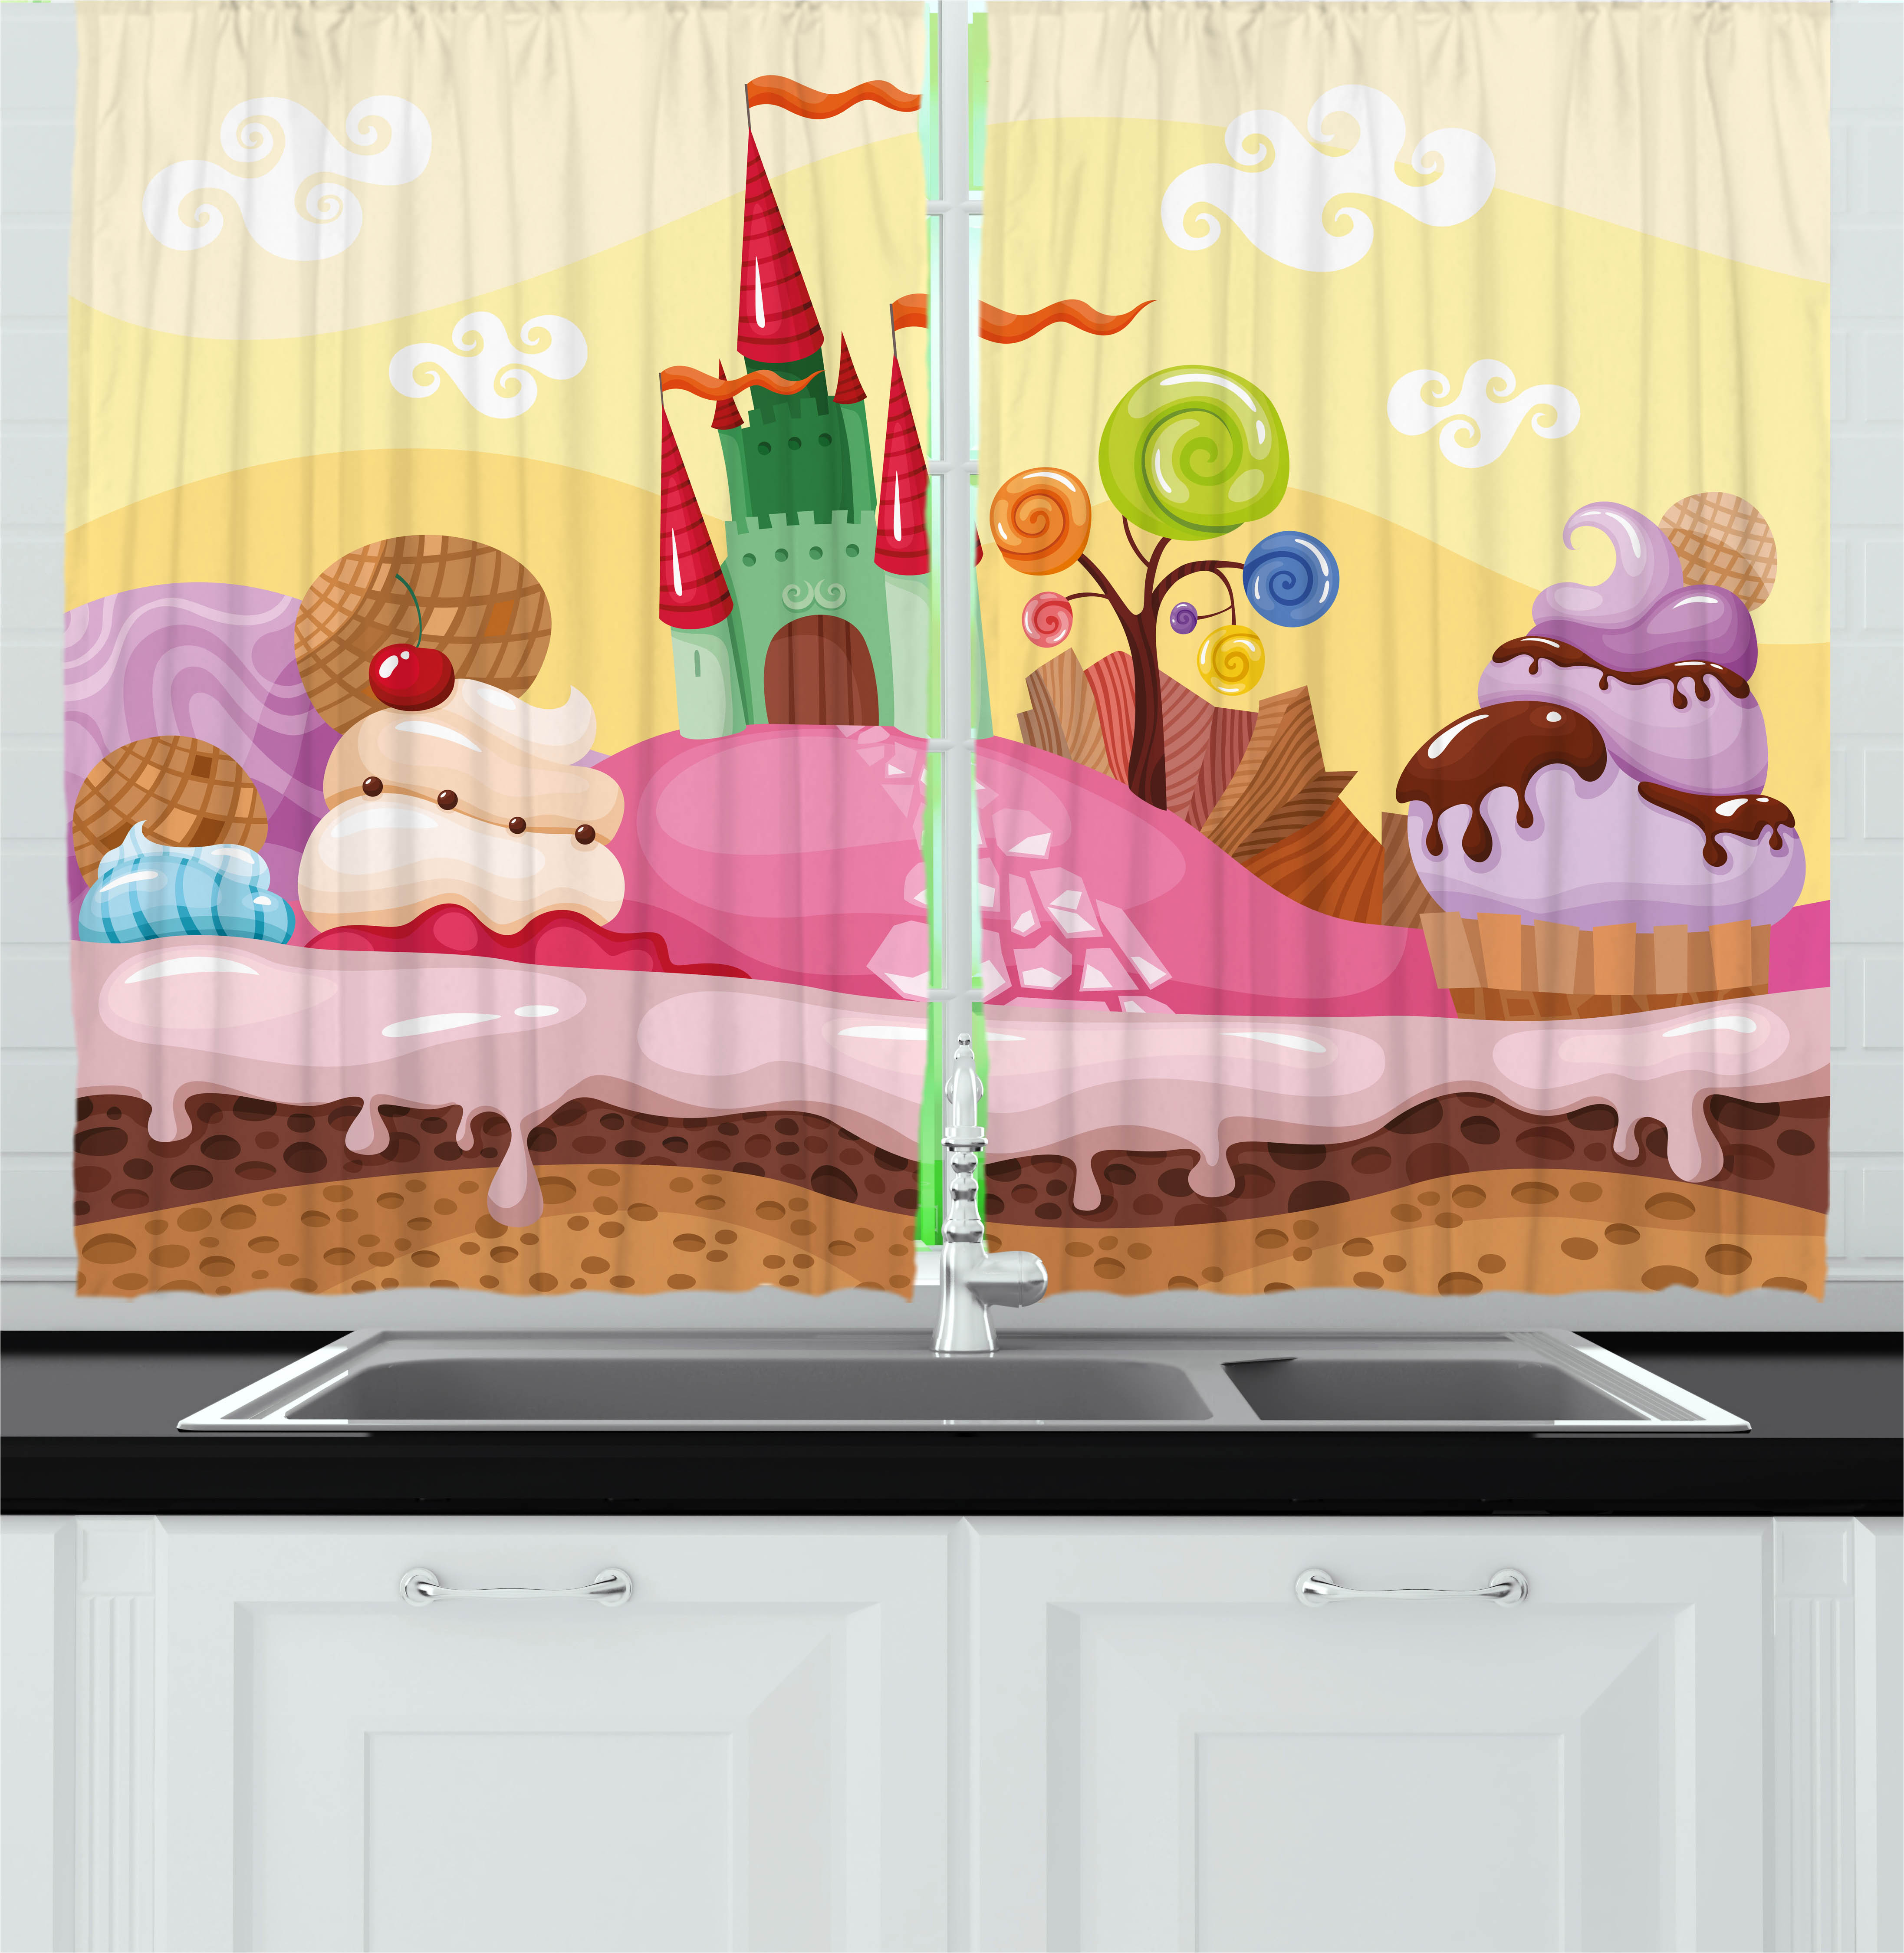 Cartoon Curtains 2 Panels Set, Kids Sweet Castle Landscape with Donuts Muffins Ice Cream Nursery Image, Window Drapes for Living Room Bedroom, 55W X 39L Inches, Sand Brown and Pink, by Ambesonne